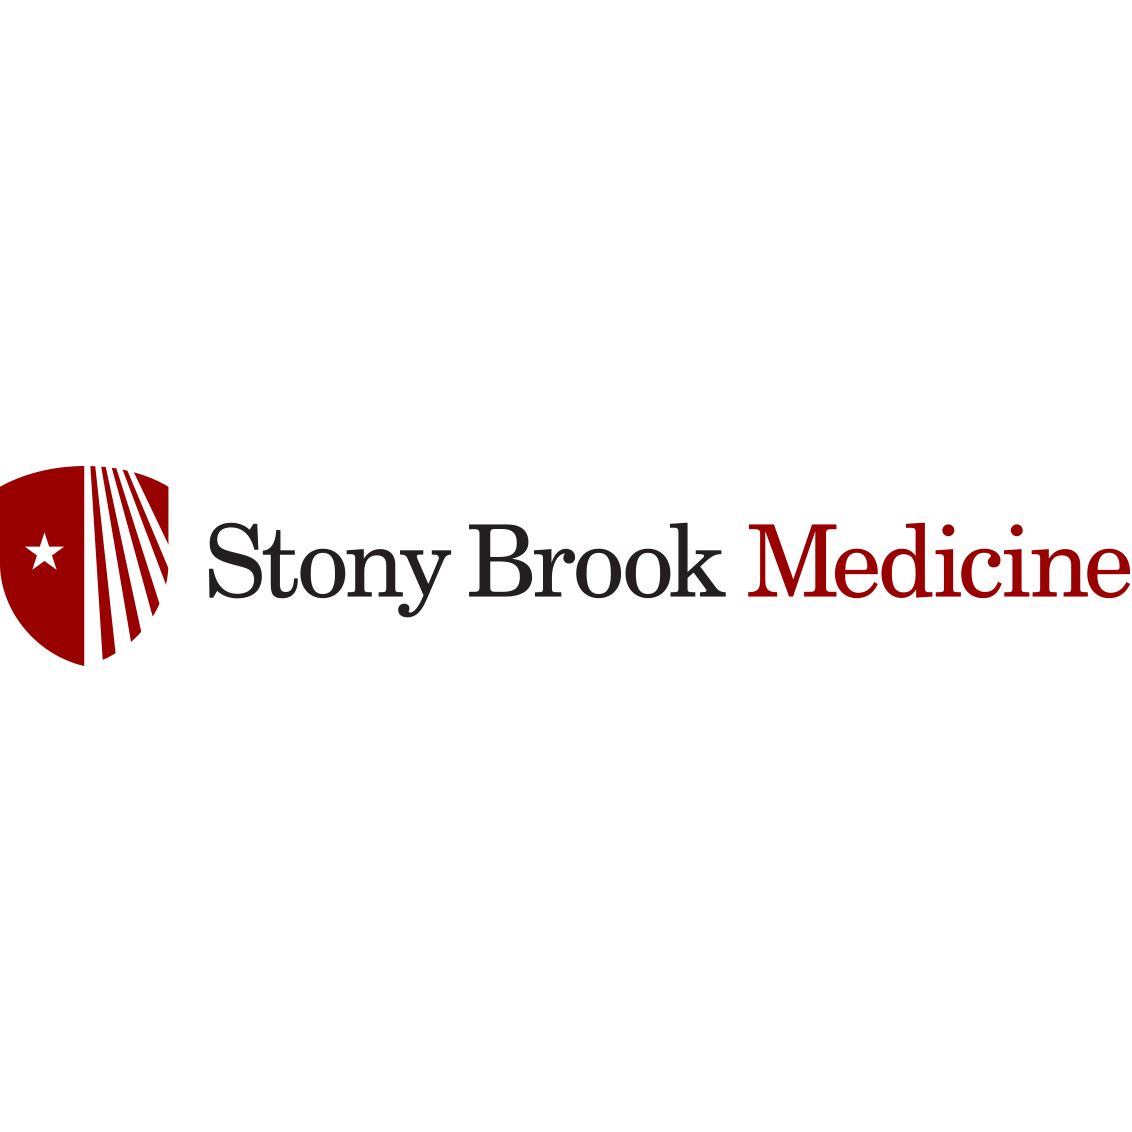 Fein Allen - STONY BROOK FAMILY MEDICAL GROUP - Southampton, NY - General or Family Practice Physicians